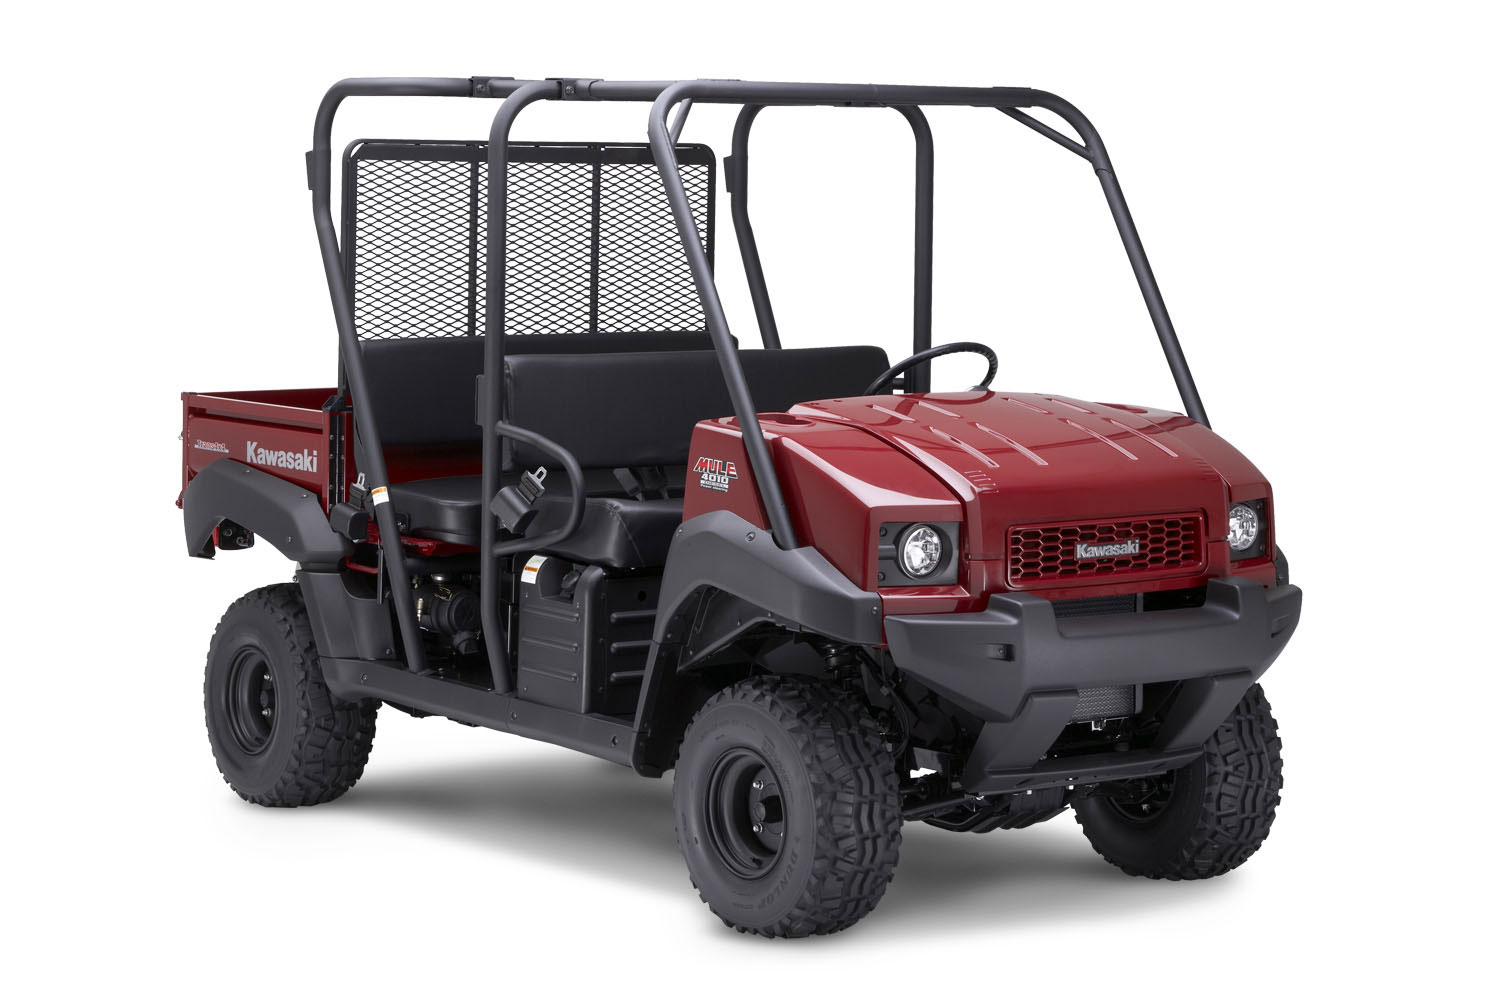 Kawasaki Mule Diesel Reviews